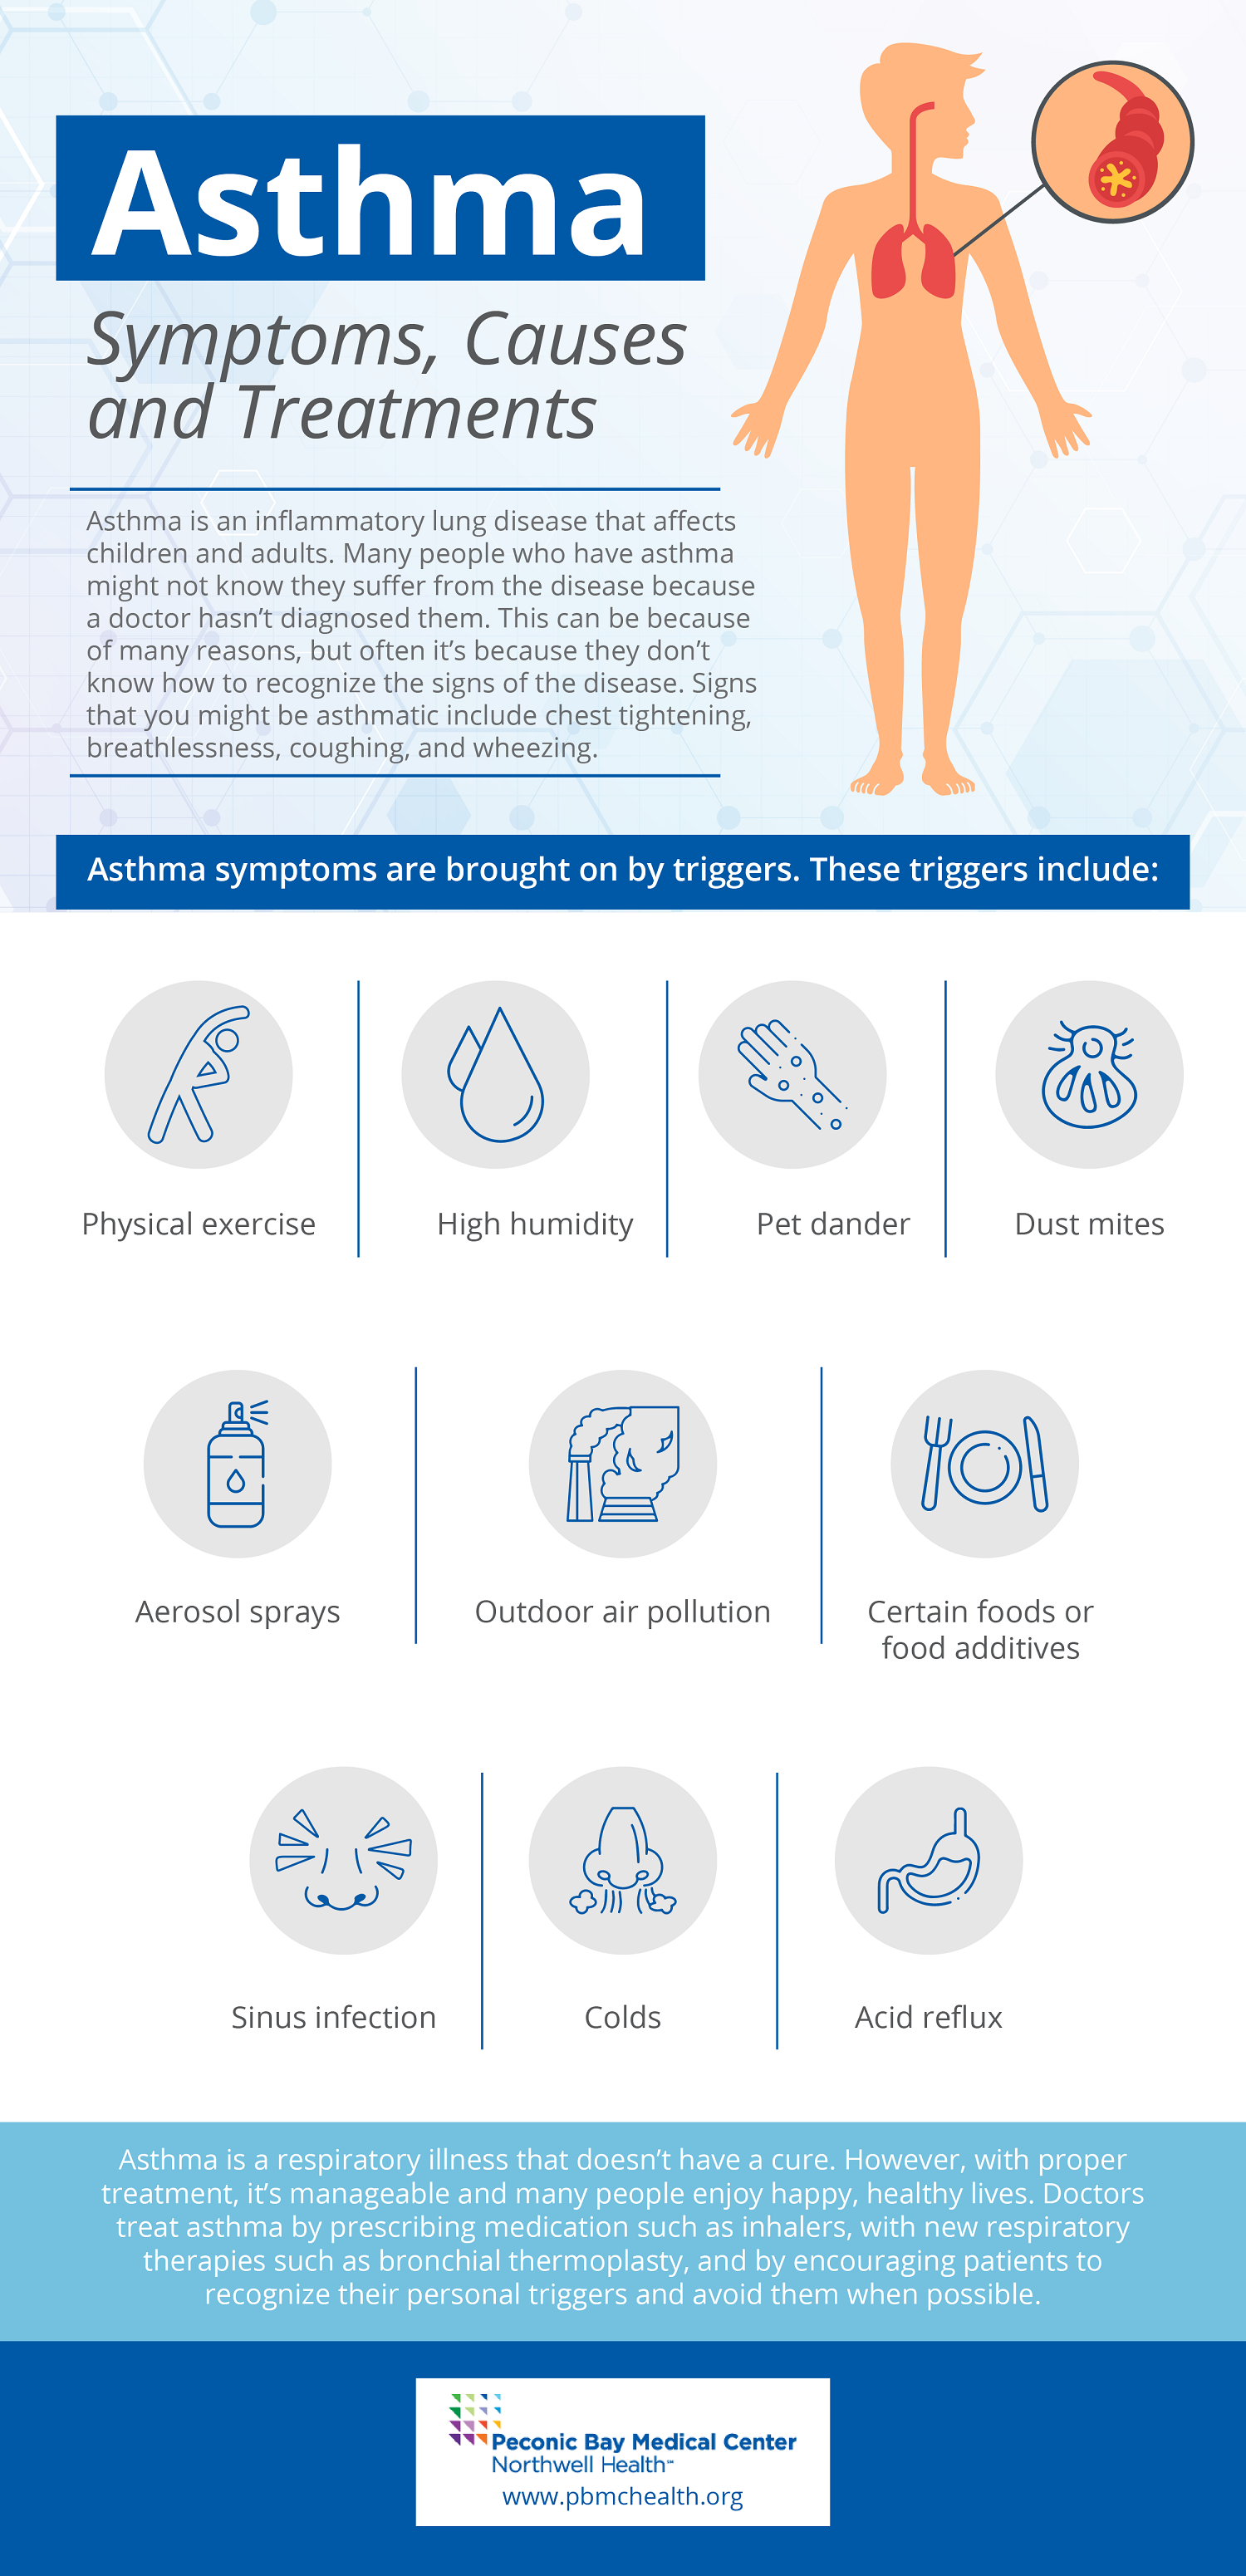 How To Treat Asthma?